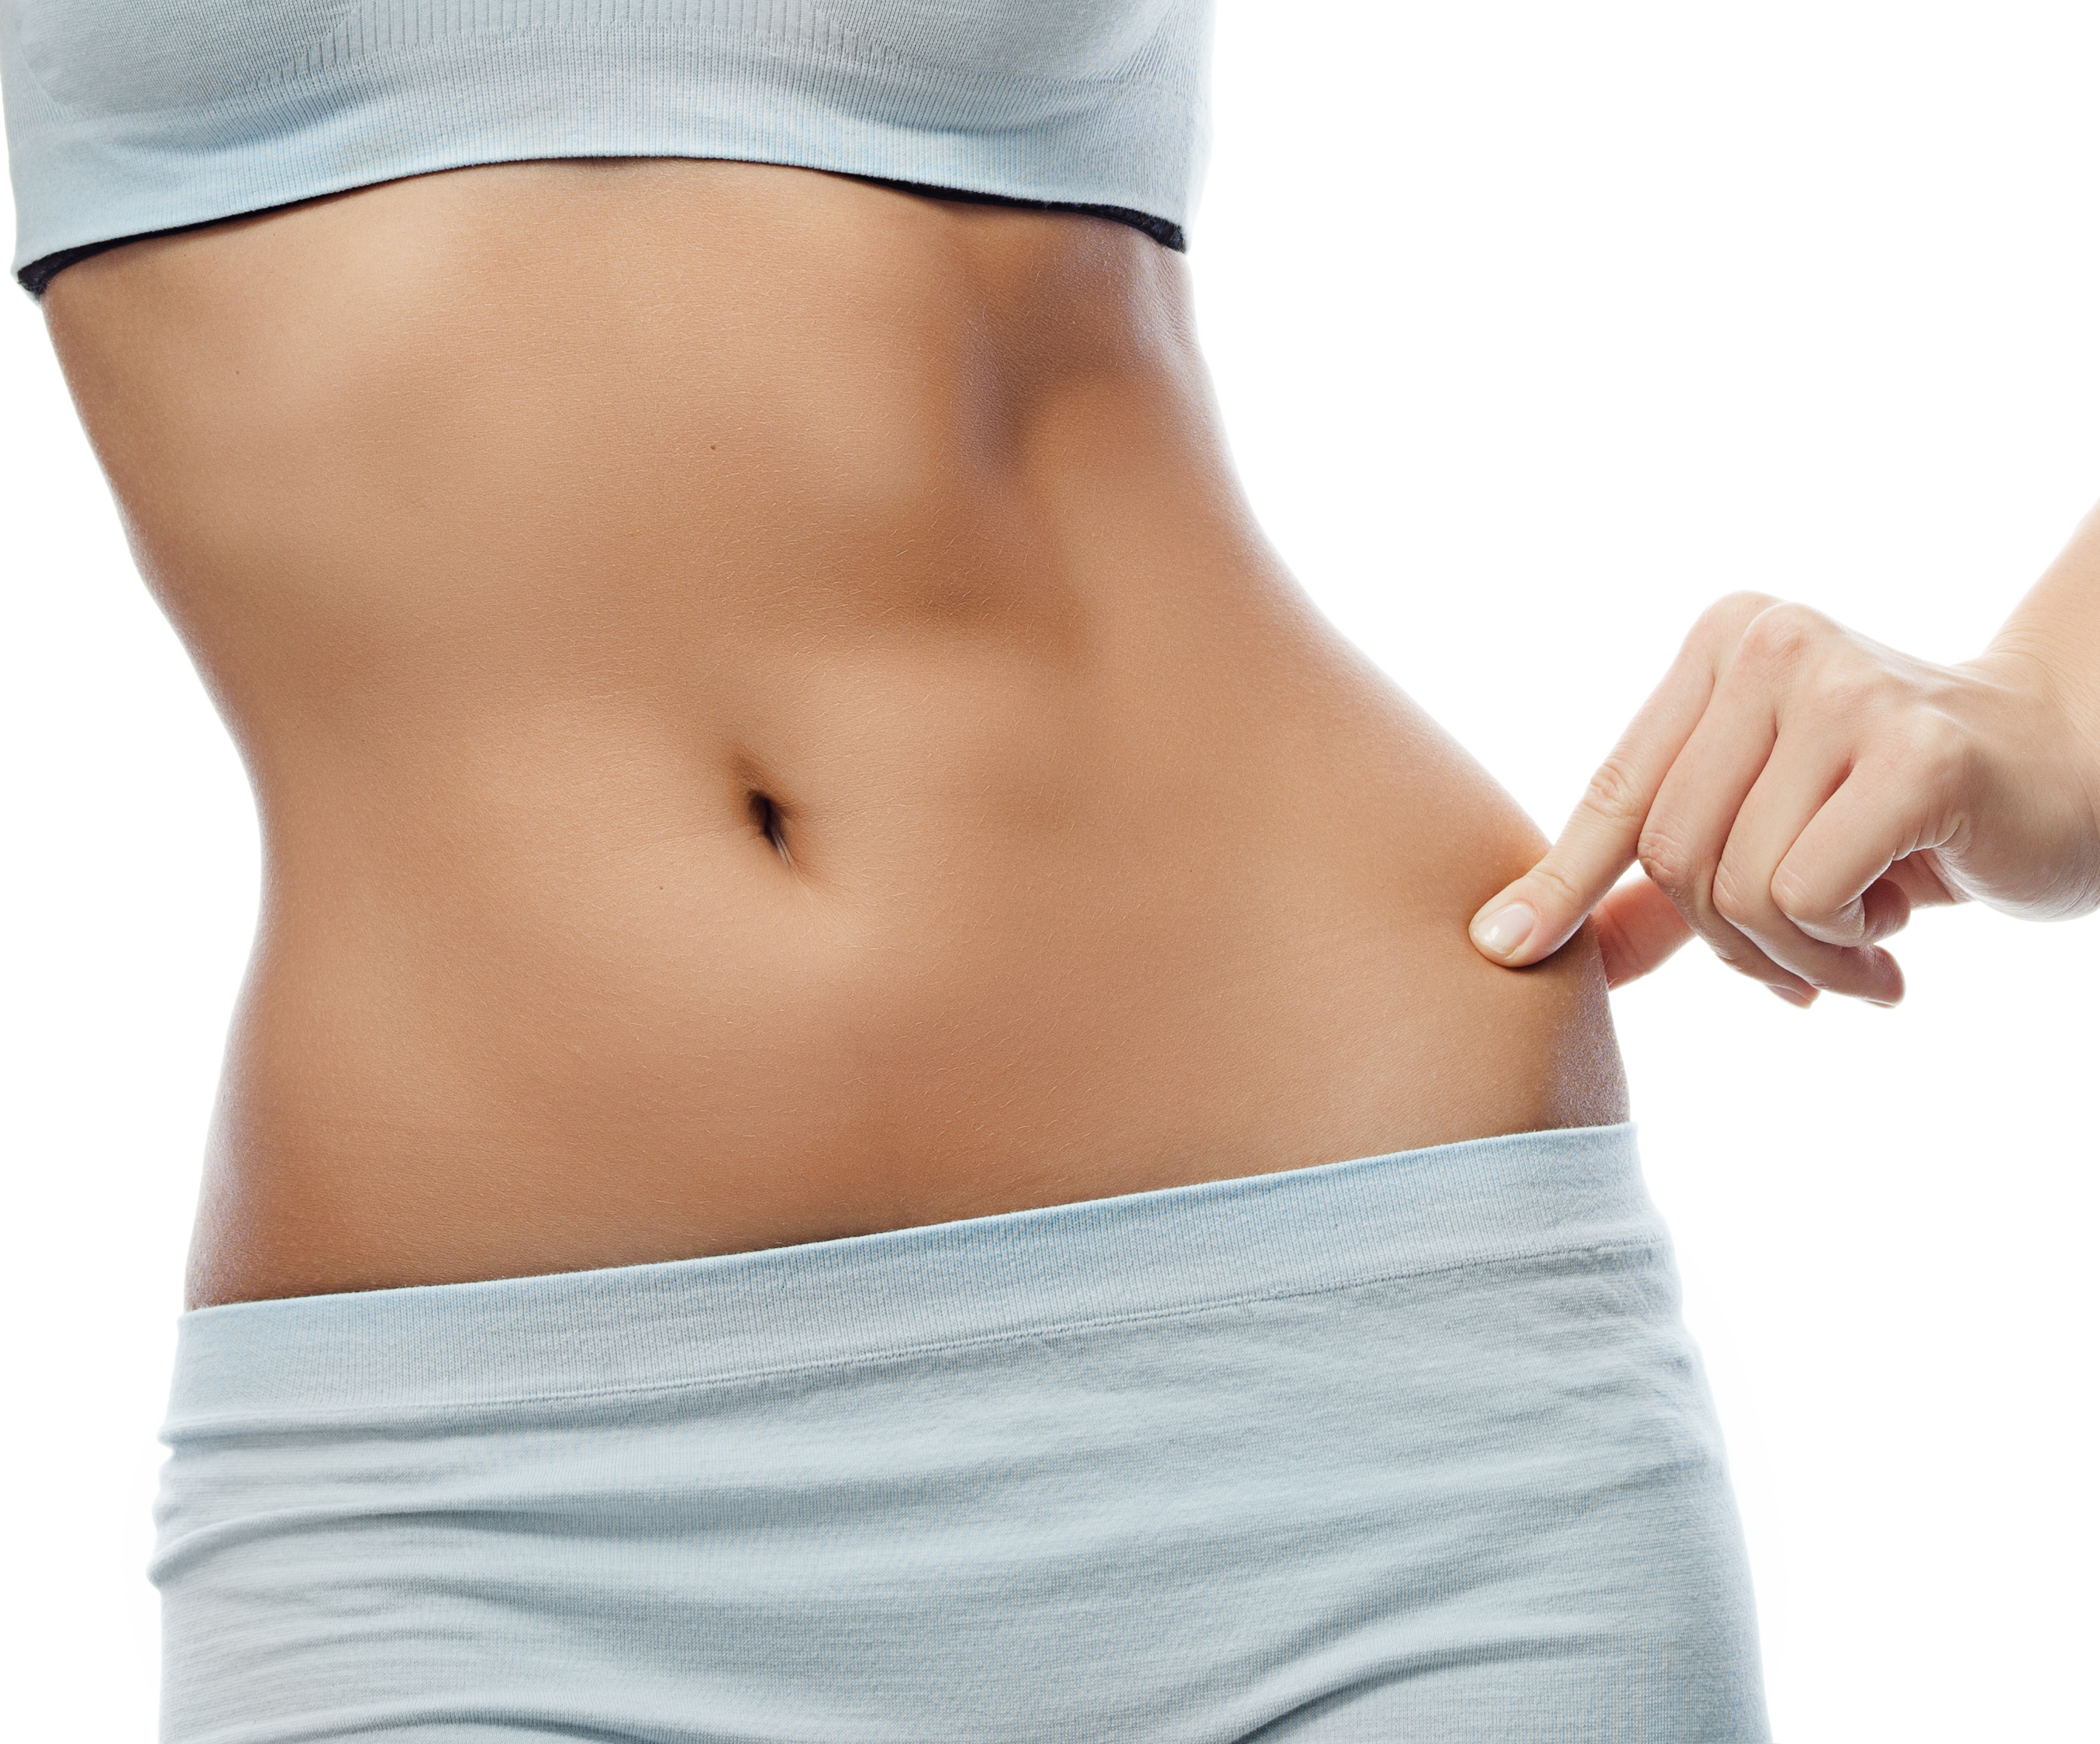 Liposuction Plastic Surgery Overview